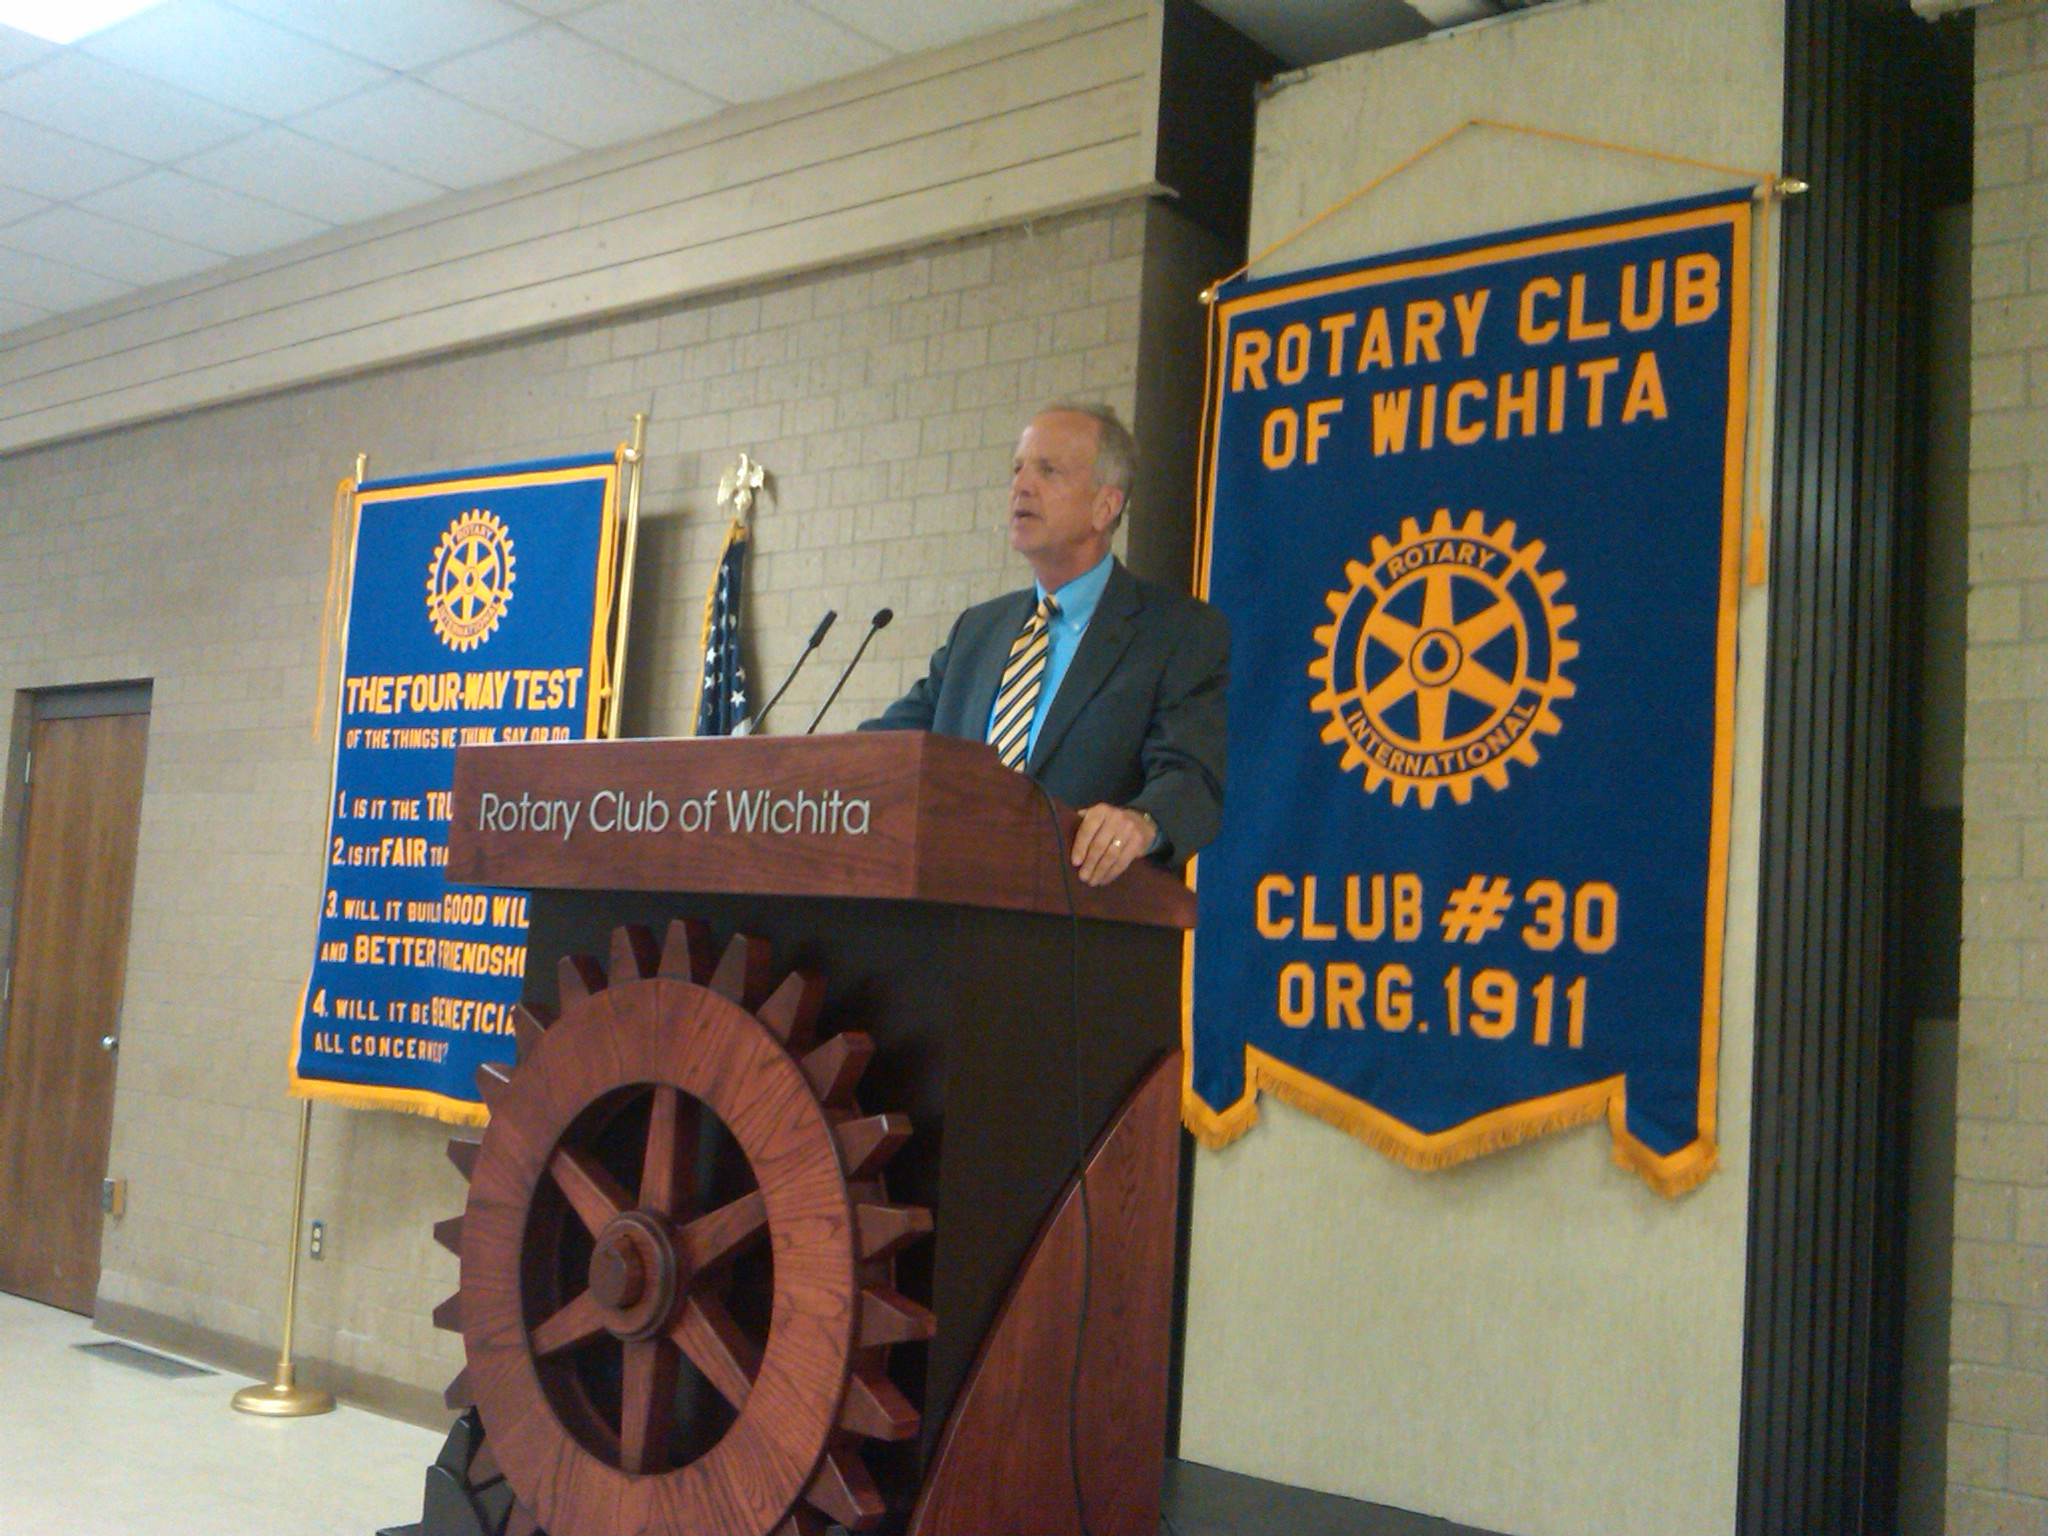 Meeting with business and professional leaders at the Rotary Club of Wichita